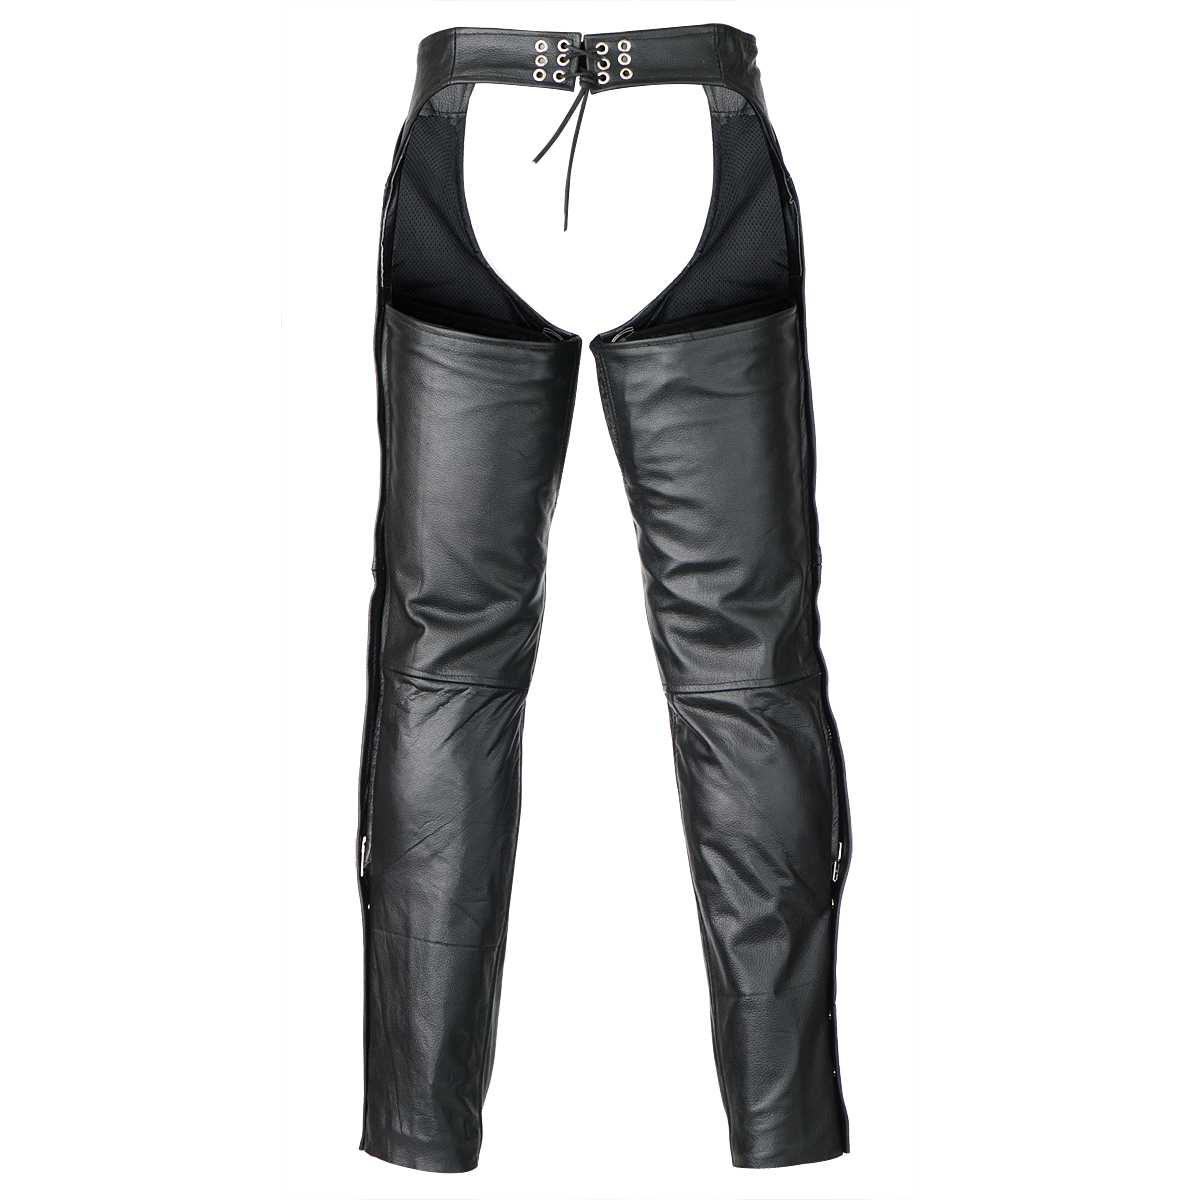 LC43401_Black-Leather-Chaps-Back-View-2